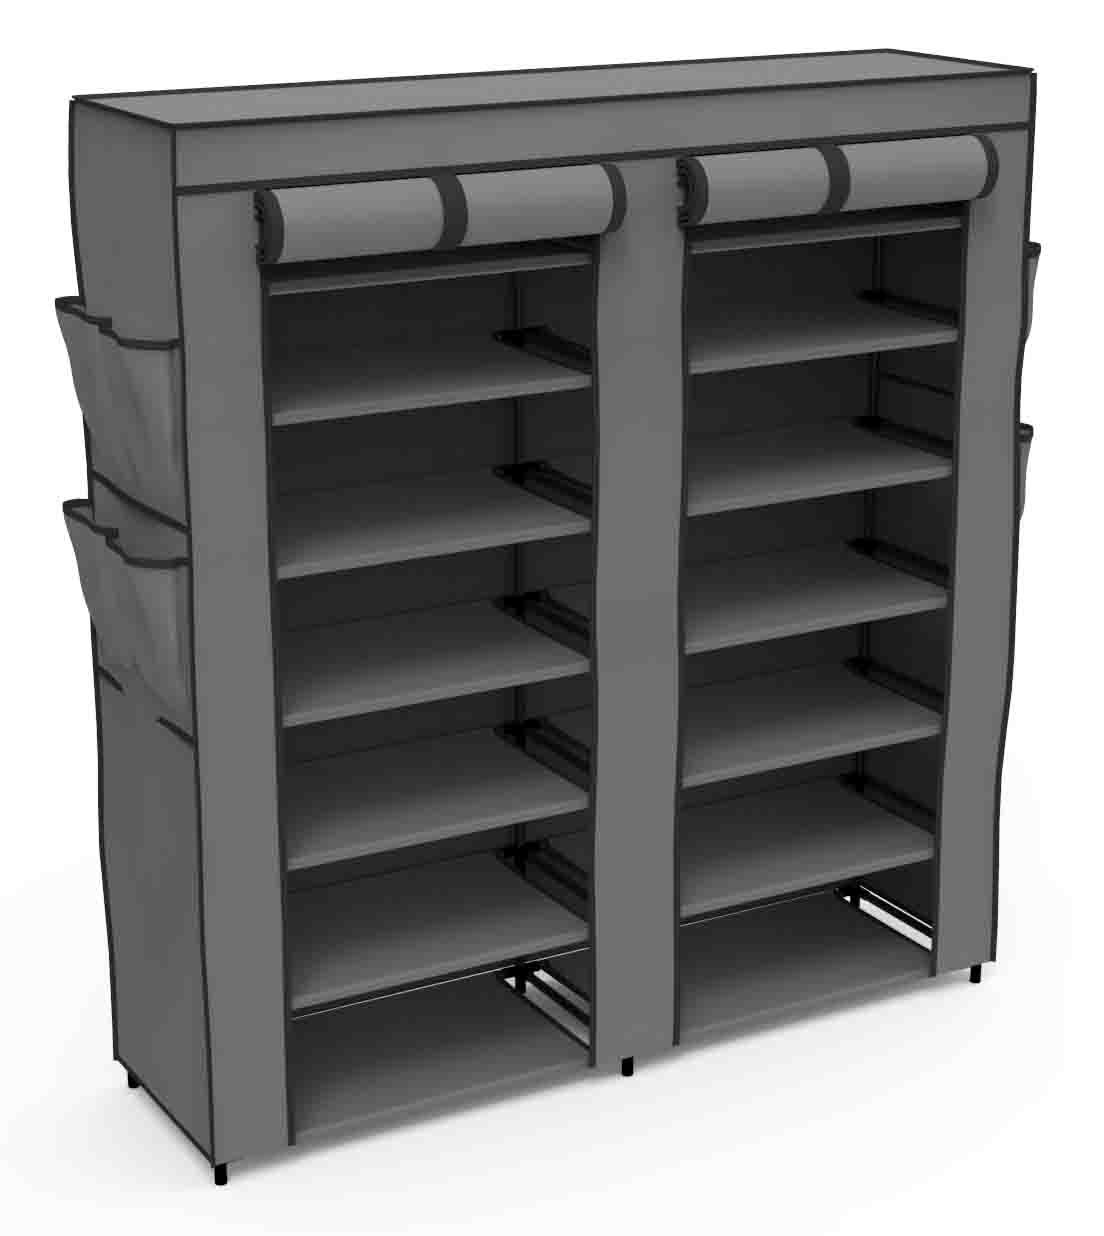 Home Basics Multipurpose Portable Wardrobe Storage Closet For Shoes and Clothing 7 Tier/14 Shelves Heavy Duty Non Woven Material With Roll Down Cover (Grey)